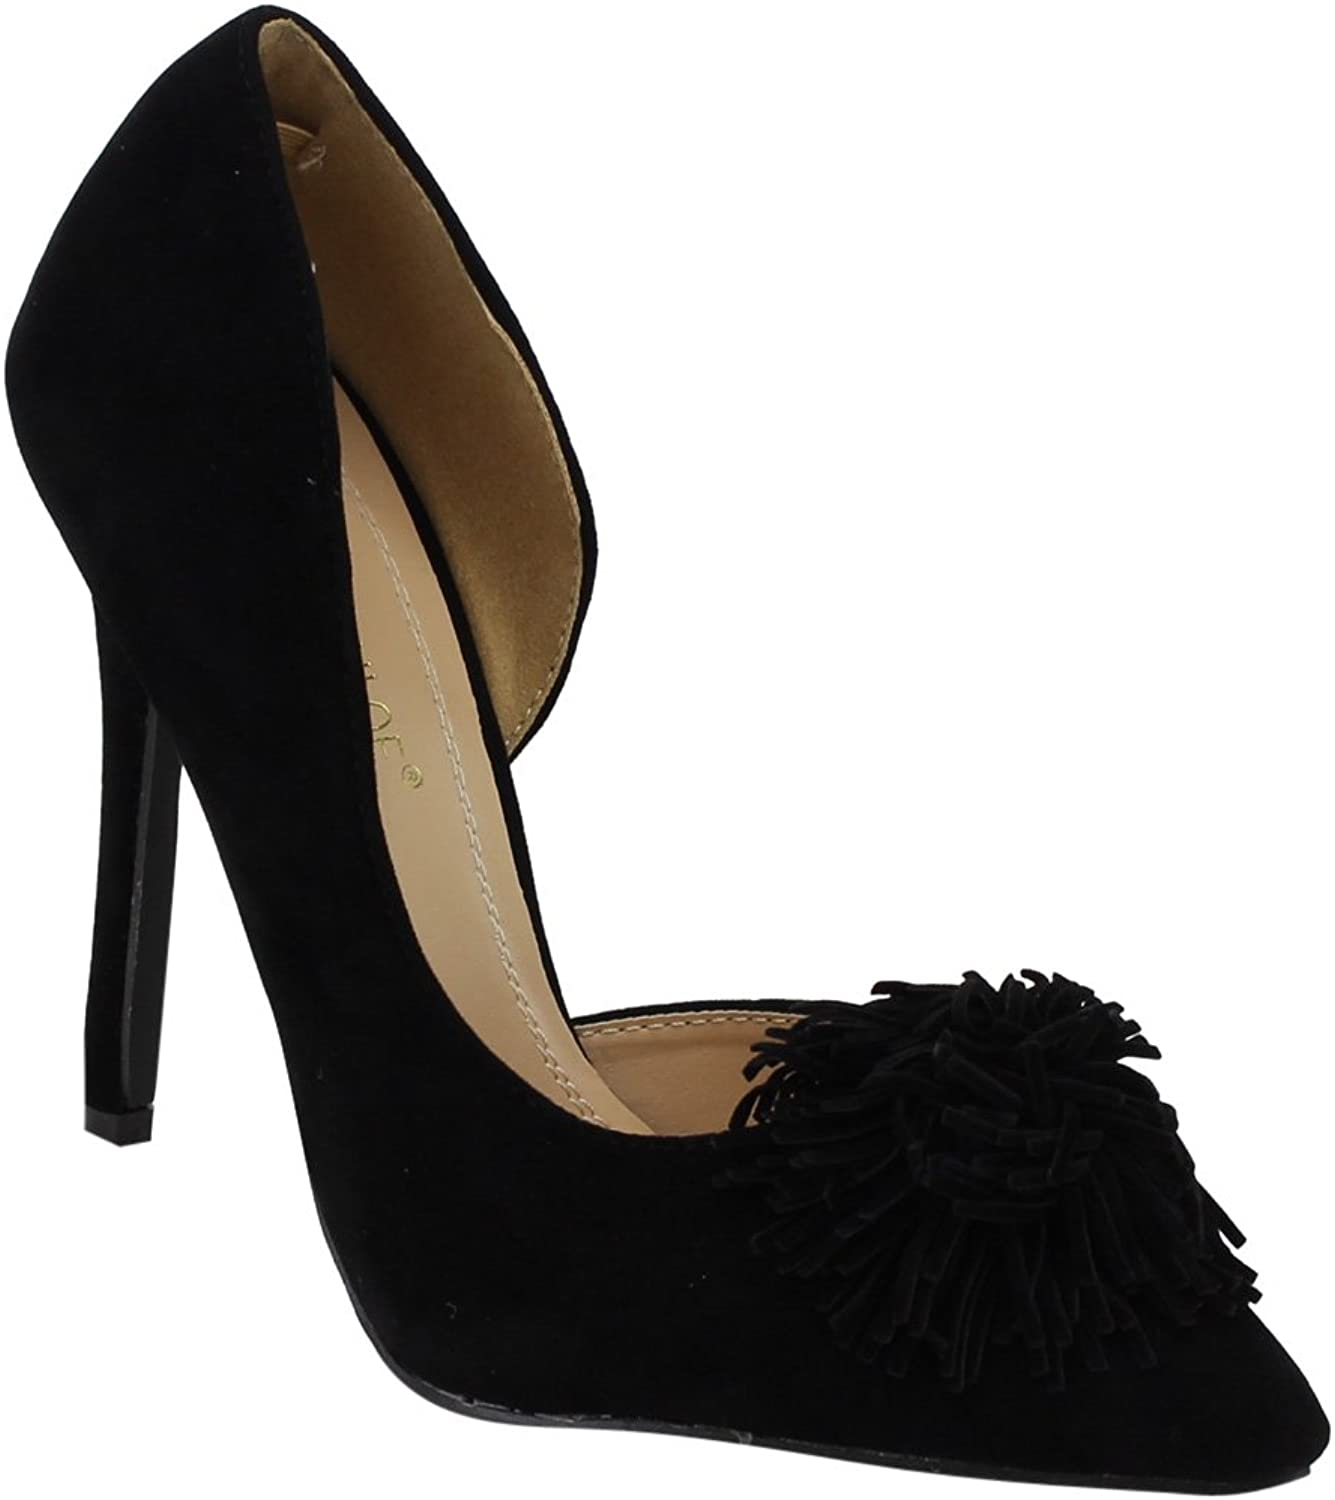 Chase & Chloe EF97 Women's High Stiletto Heel Fringe D'Orsay Dress Pumps